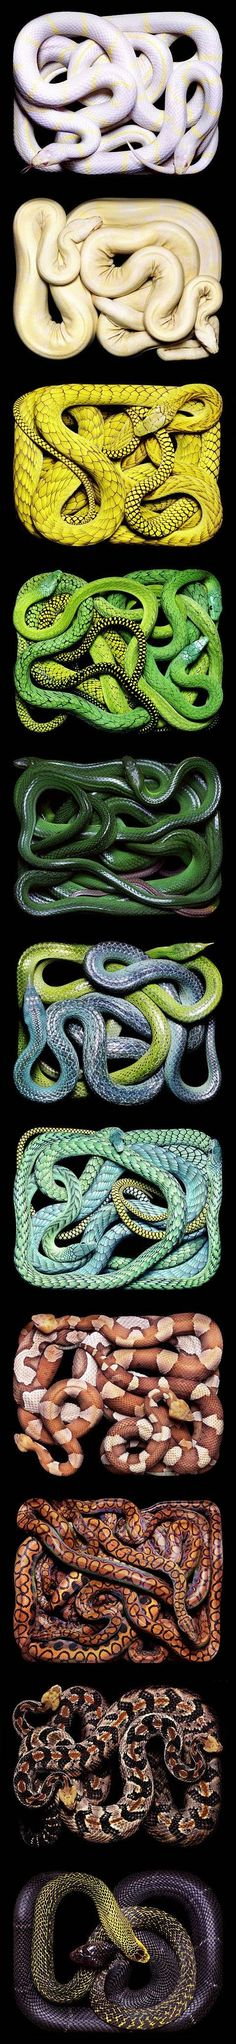 Guido Mocafico I absolutely detest snakes, but this picture is creative and artistic. I figured its note worthy